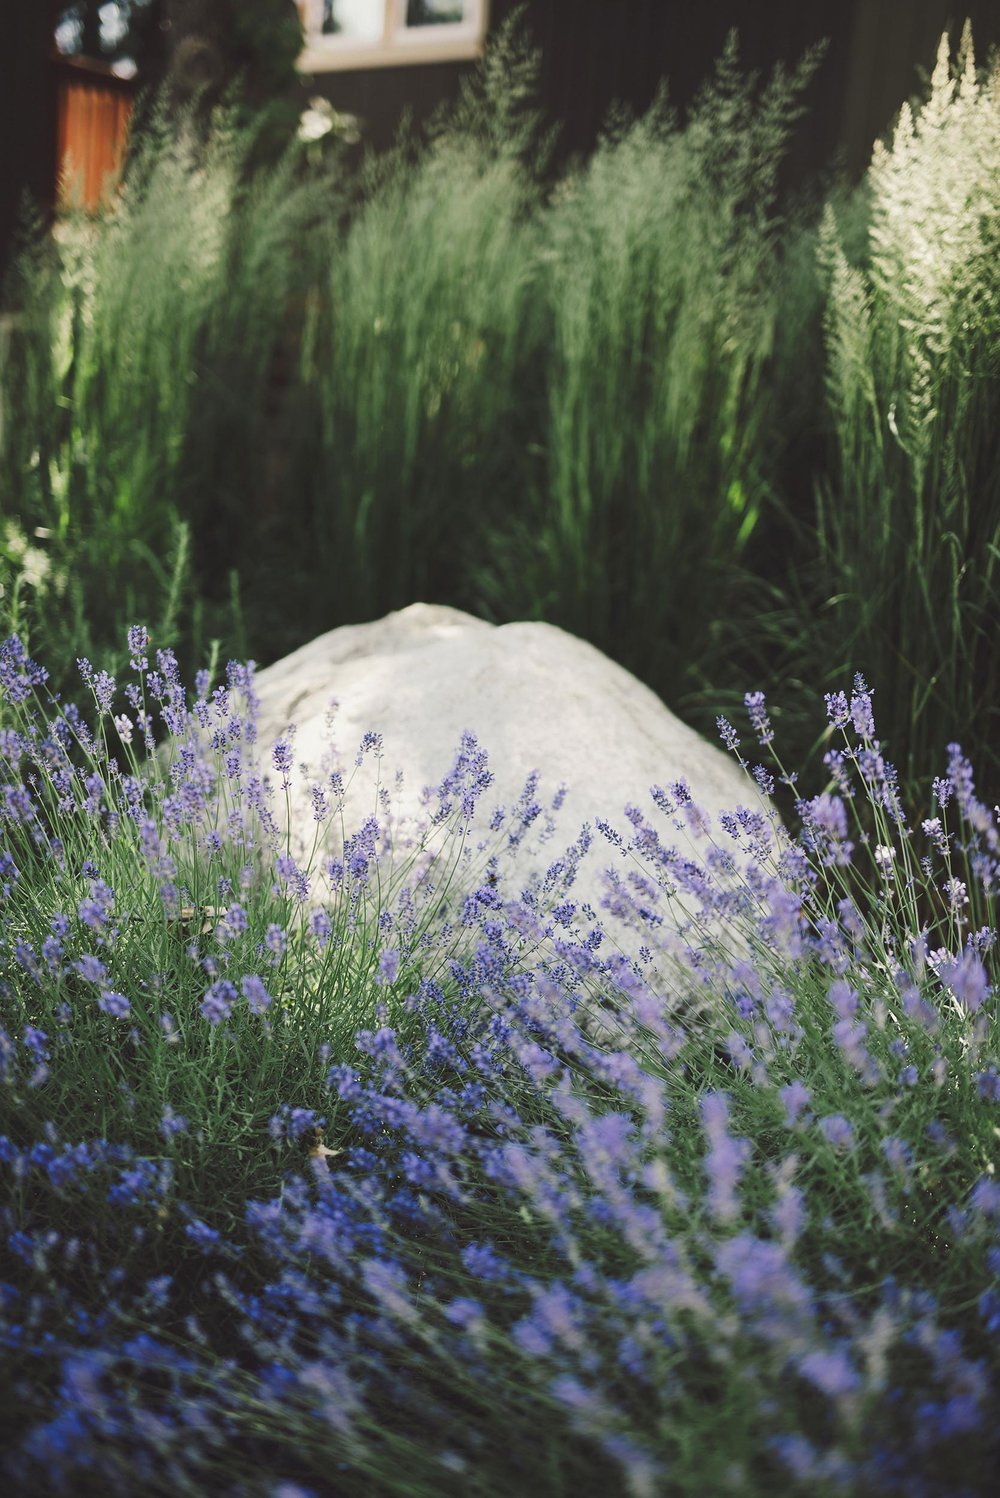 hidden granite boulder close up + lavender + tall soft grasses + modern PNW landscape